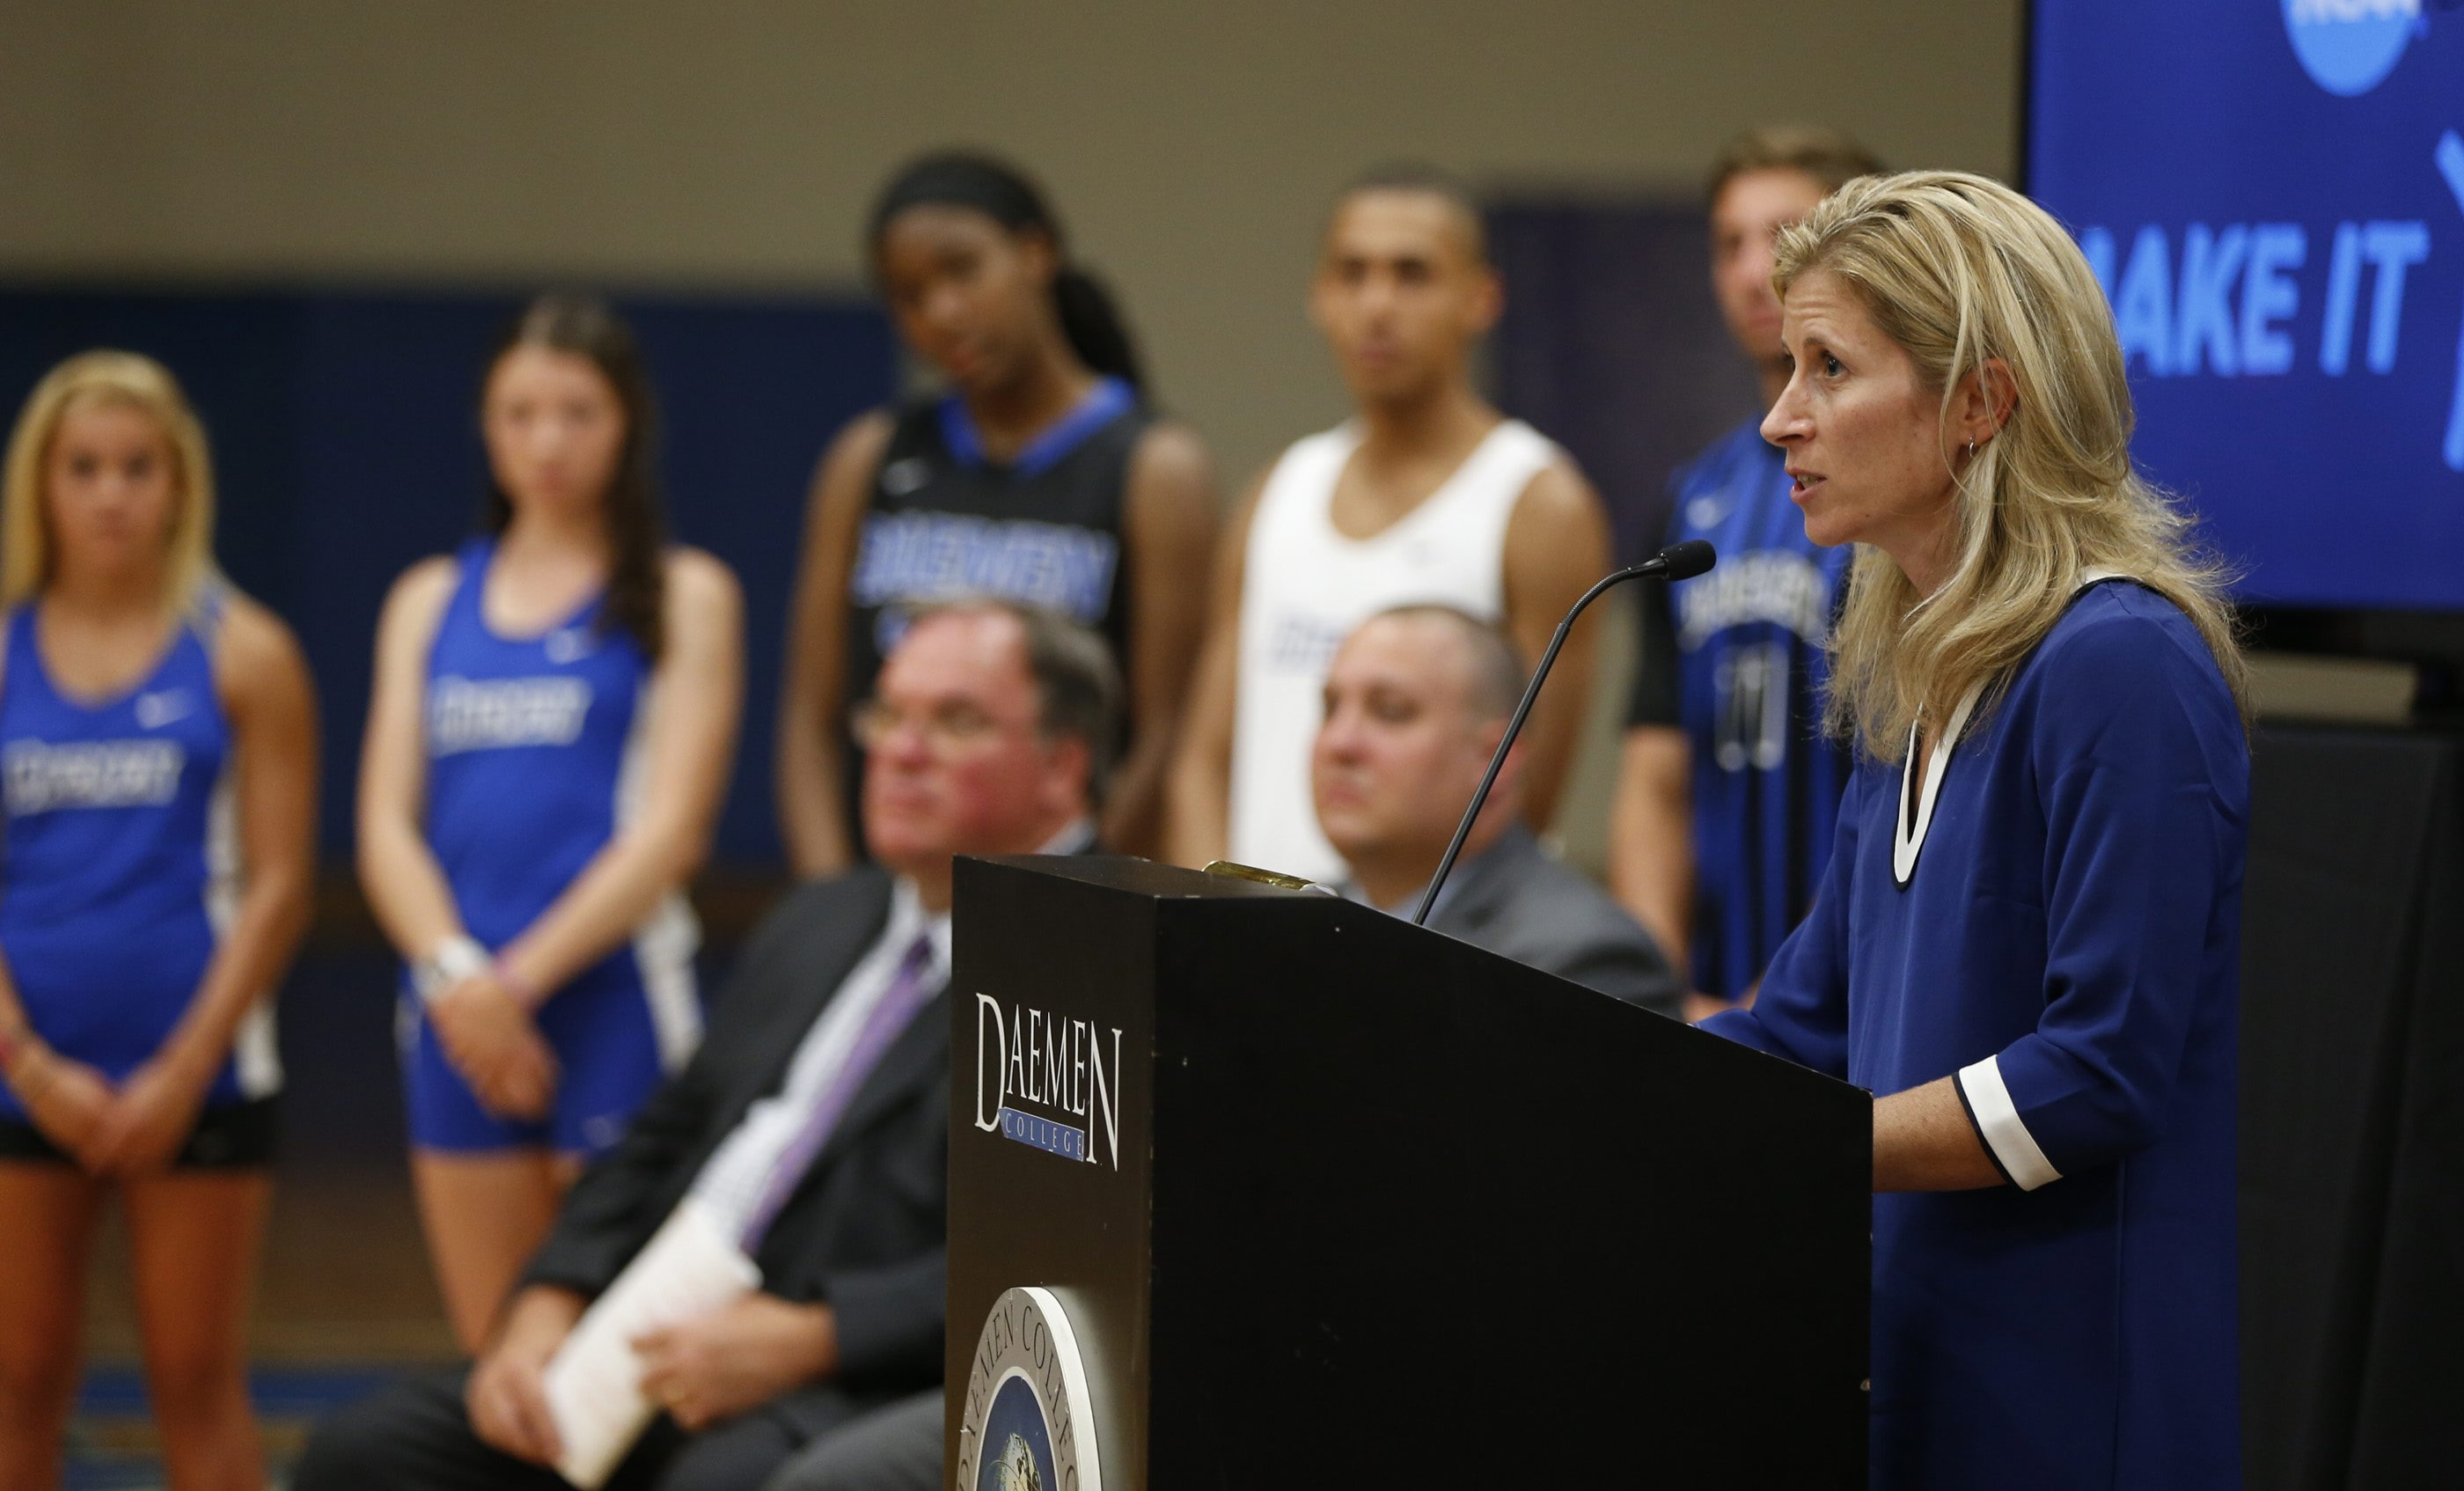 Bridget Niland, Director of Athletics at Damen College speaks during a news conference at Damen, announcing it has received NCAA clearance to fully participate at the Division II  level on Monday, July 20, 2015.  (Harry Scull Jr / Buffalo News)